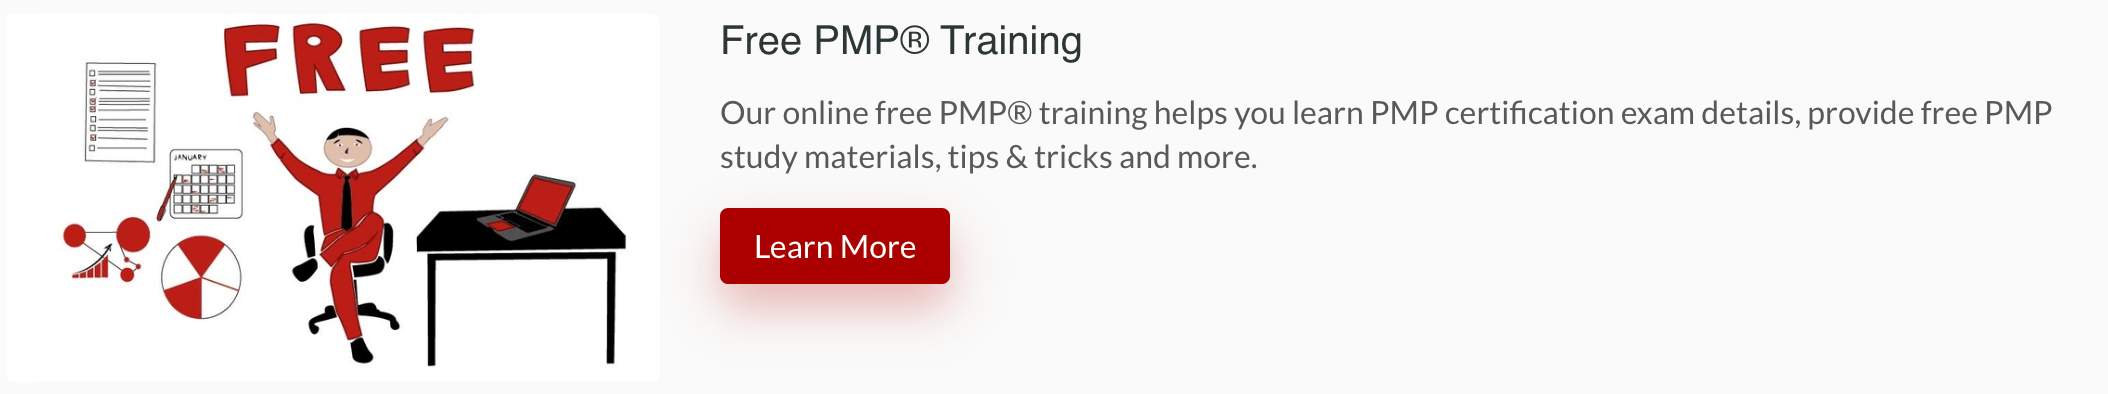 Screen-Shot-2019-10-16-at-17.55.36 #1 PMP Certification Bible - Top 25+ QAs About PMP®